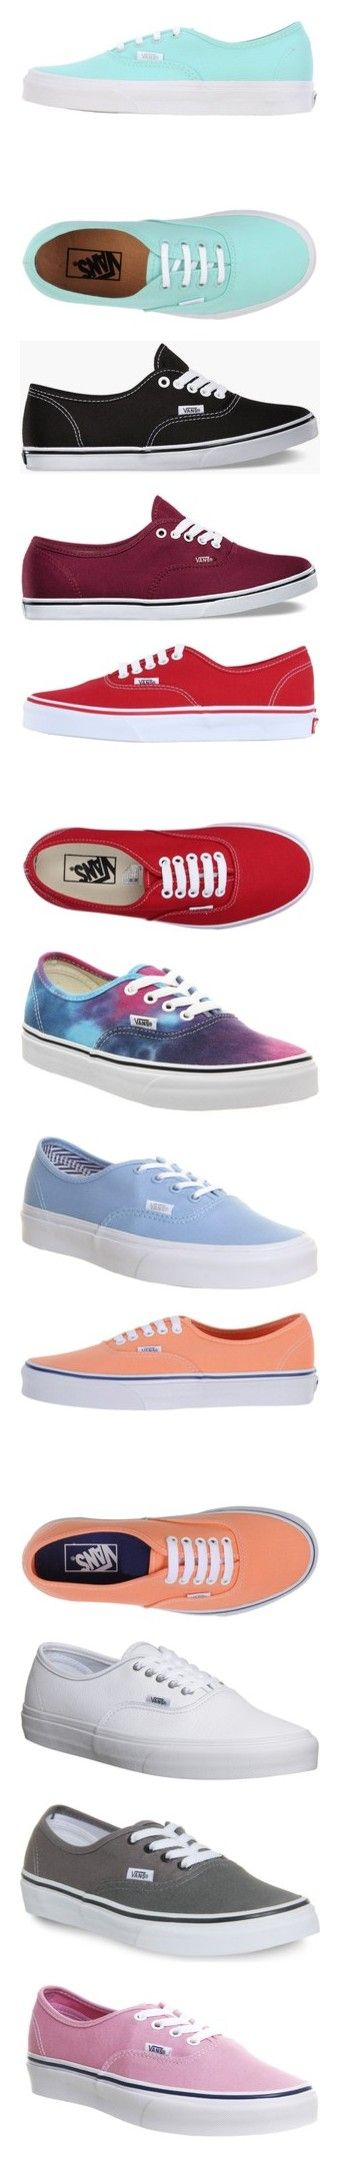 """""""PolyData: Happy 50th Anniversary, Vans!"""" by polyvore ❤ liked on Polyvore featuring polydata, shoes, sneakers, vans, blue, light green, round toe sneakers, flat sneakers, blue shoes and round cap"""